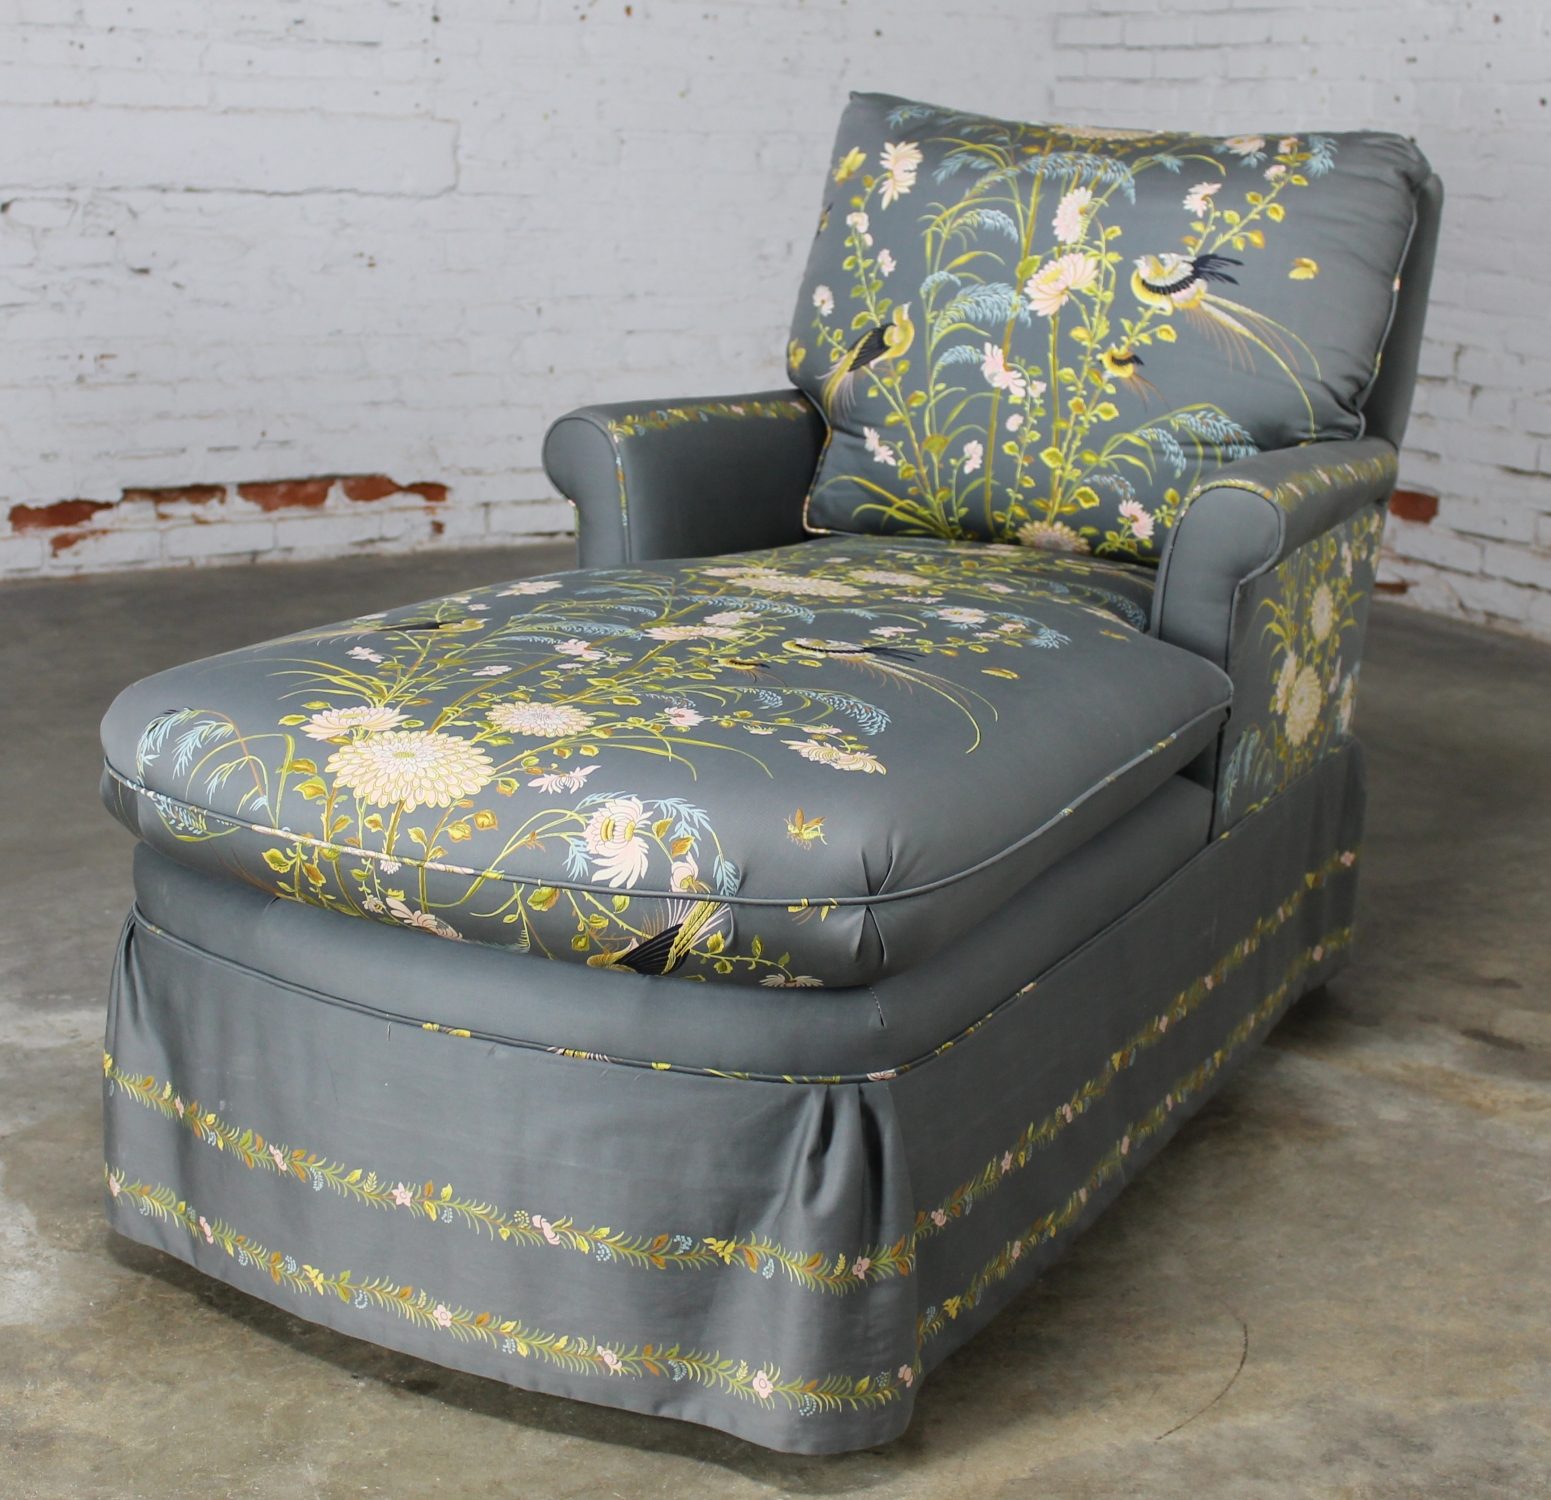 Vintage 1940 S Double Armed Chaise Lounge Newly